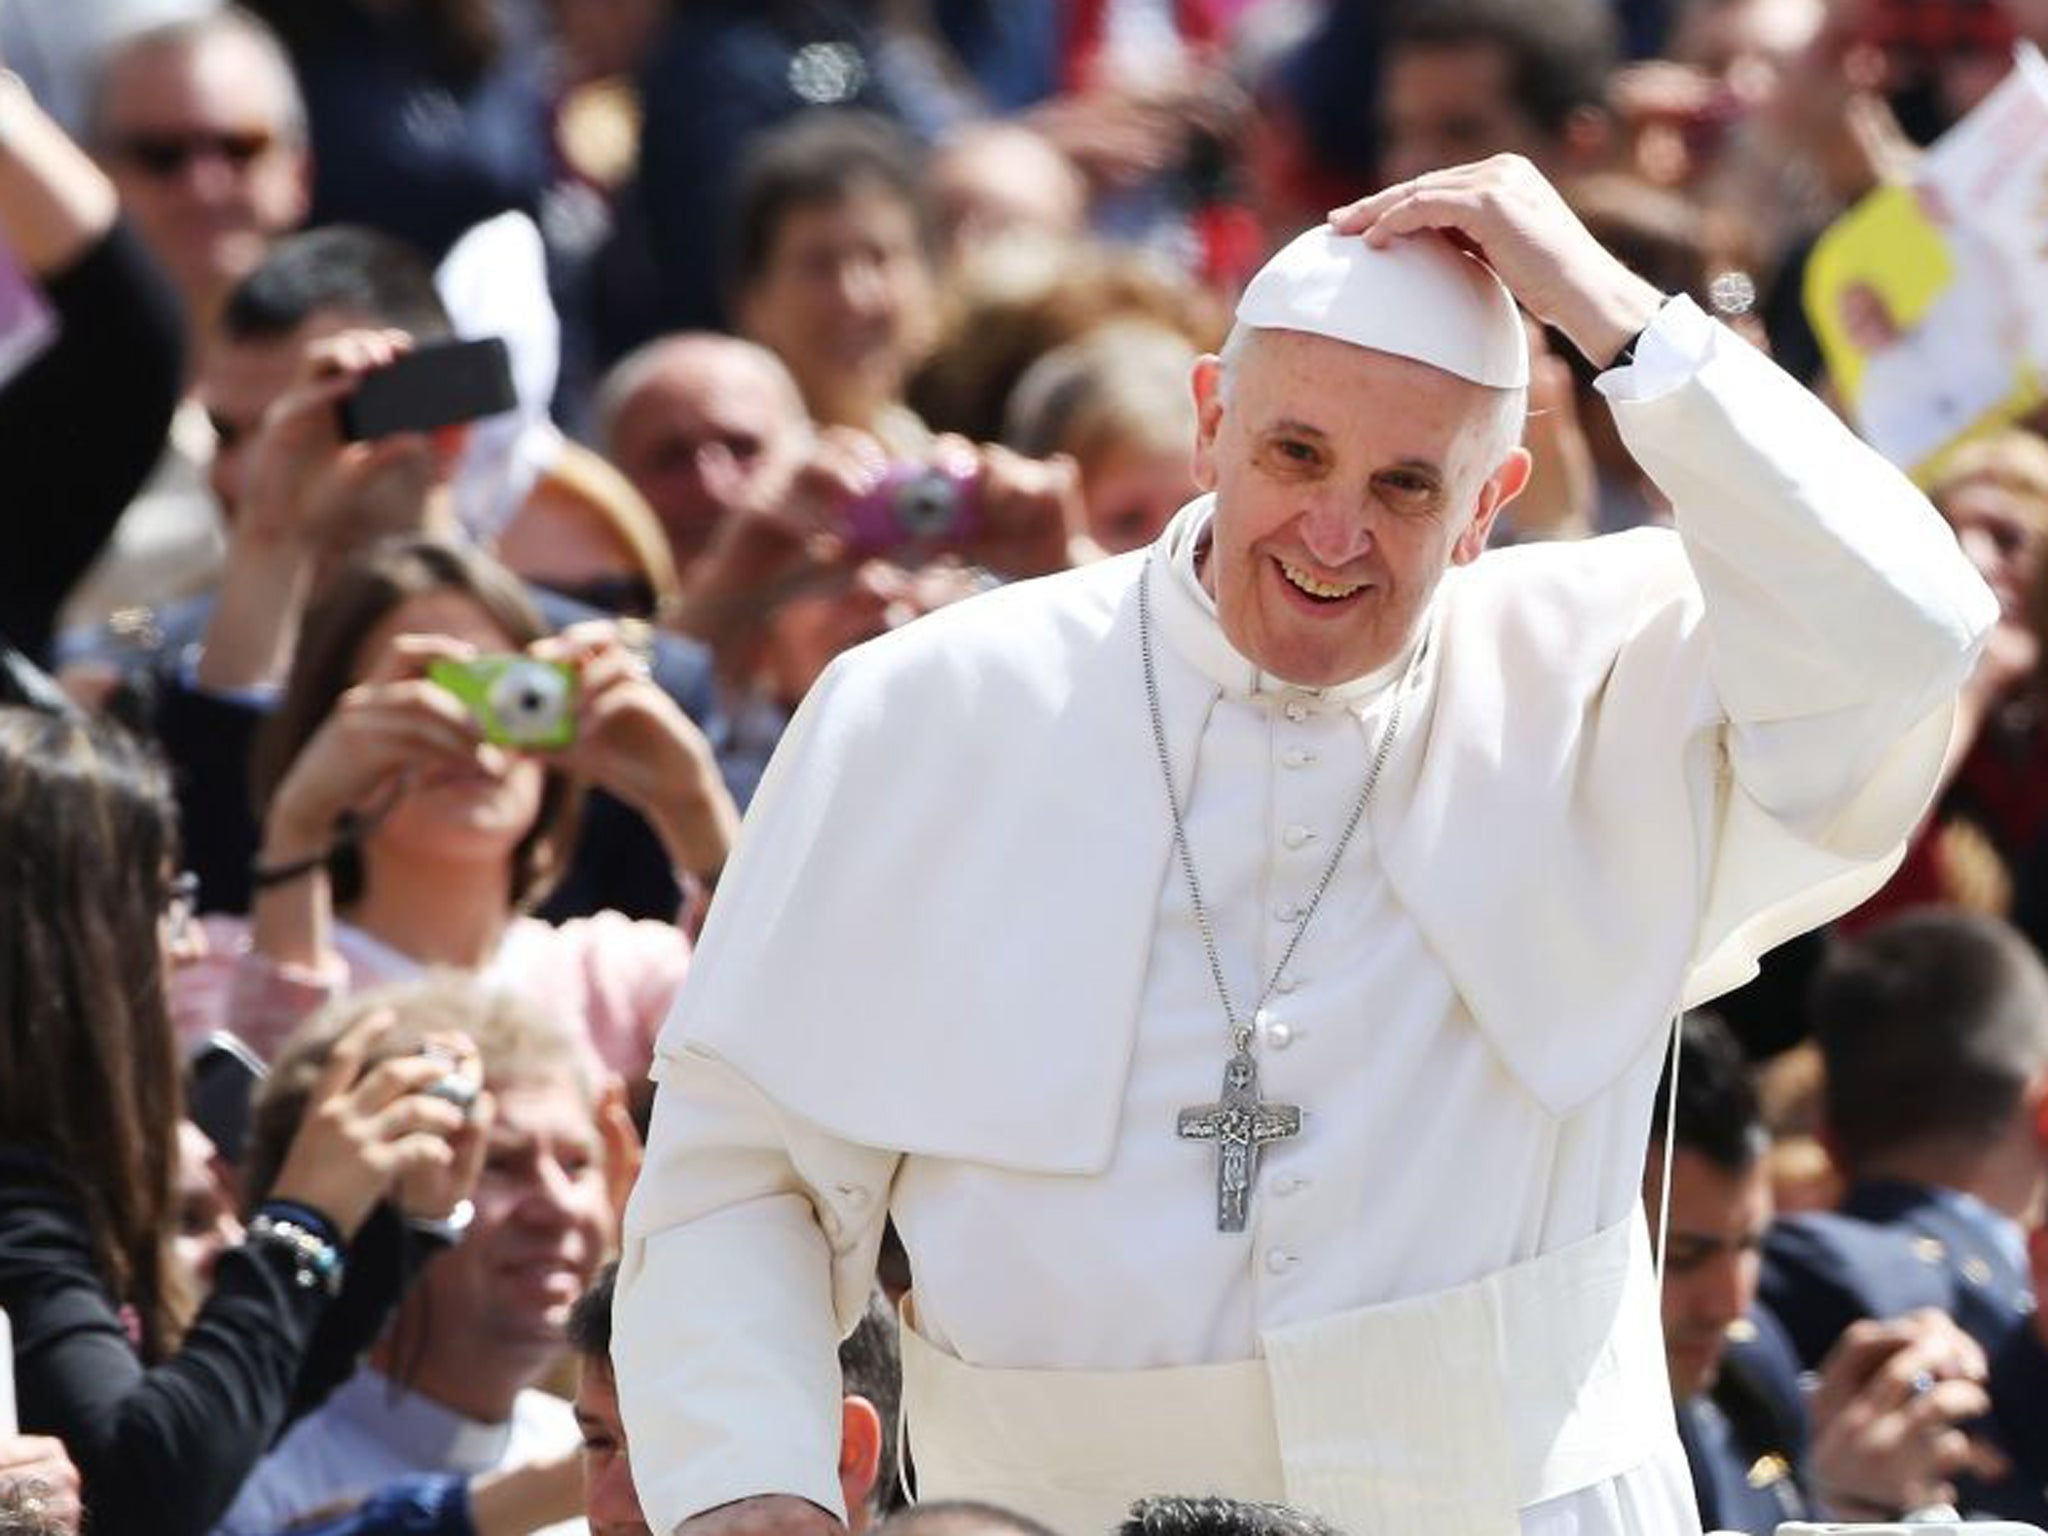 Pope Francis - the first year: Is the rebel too good to be